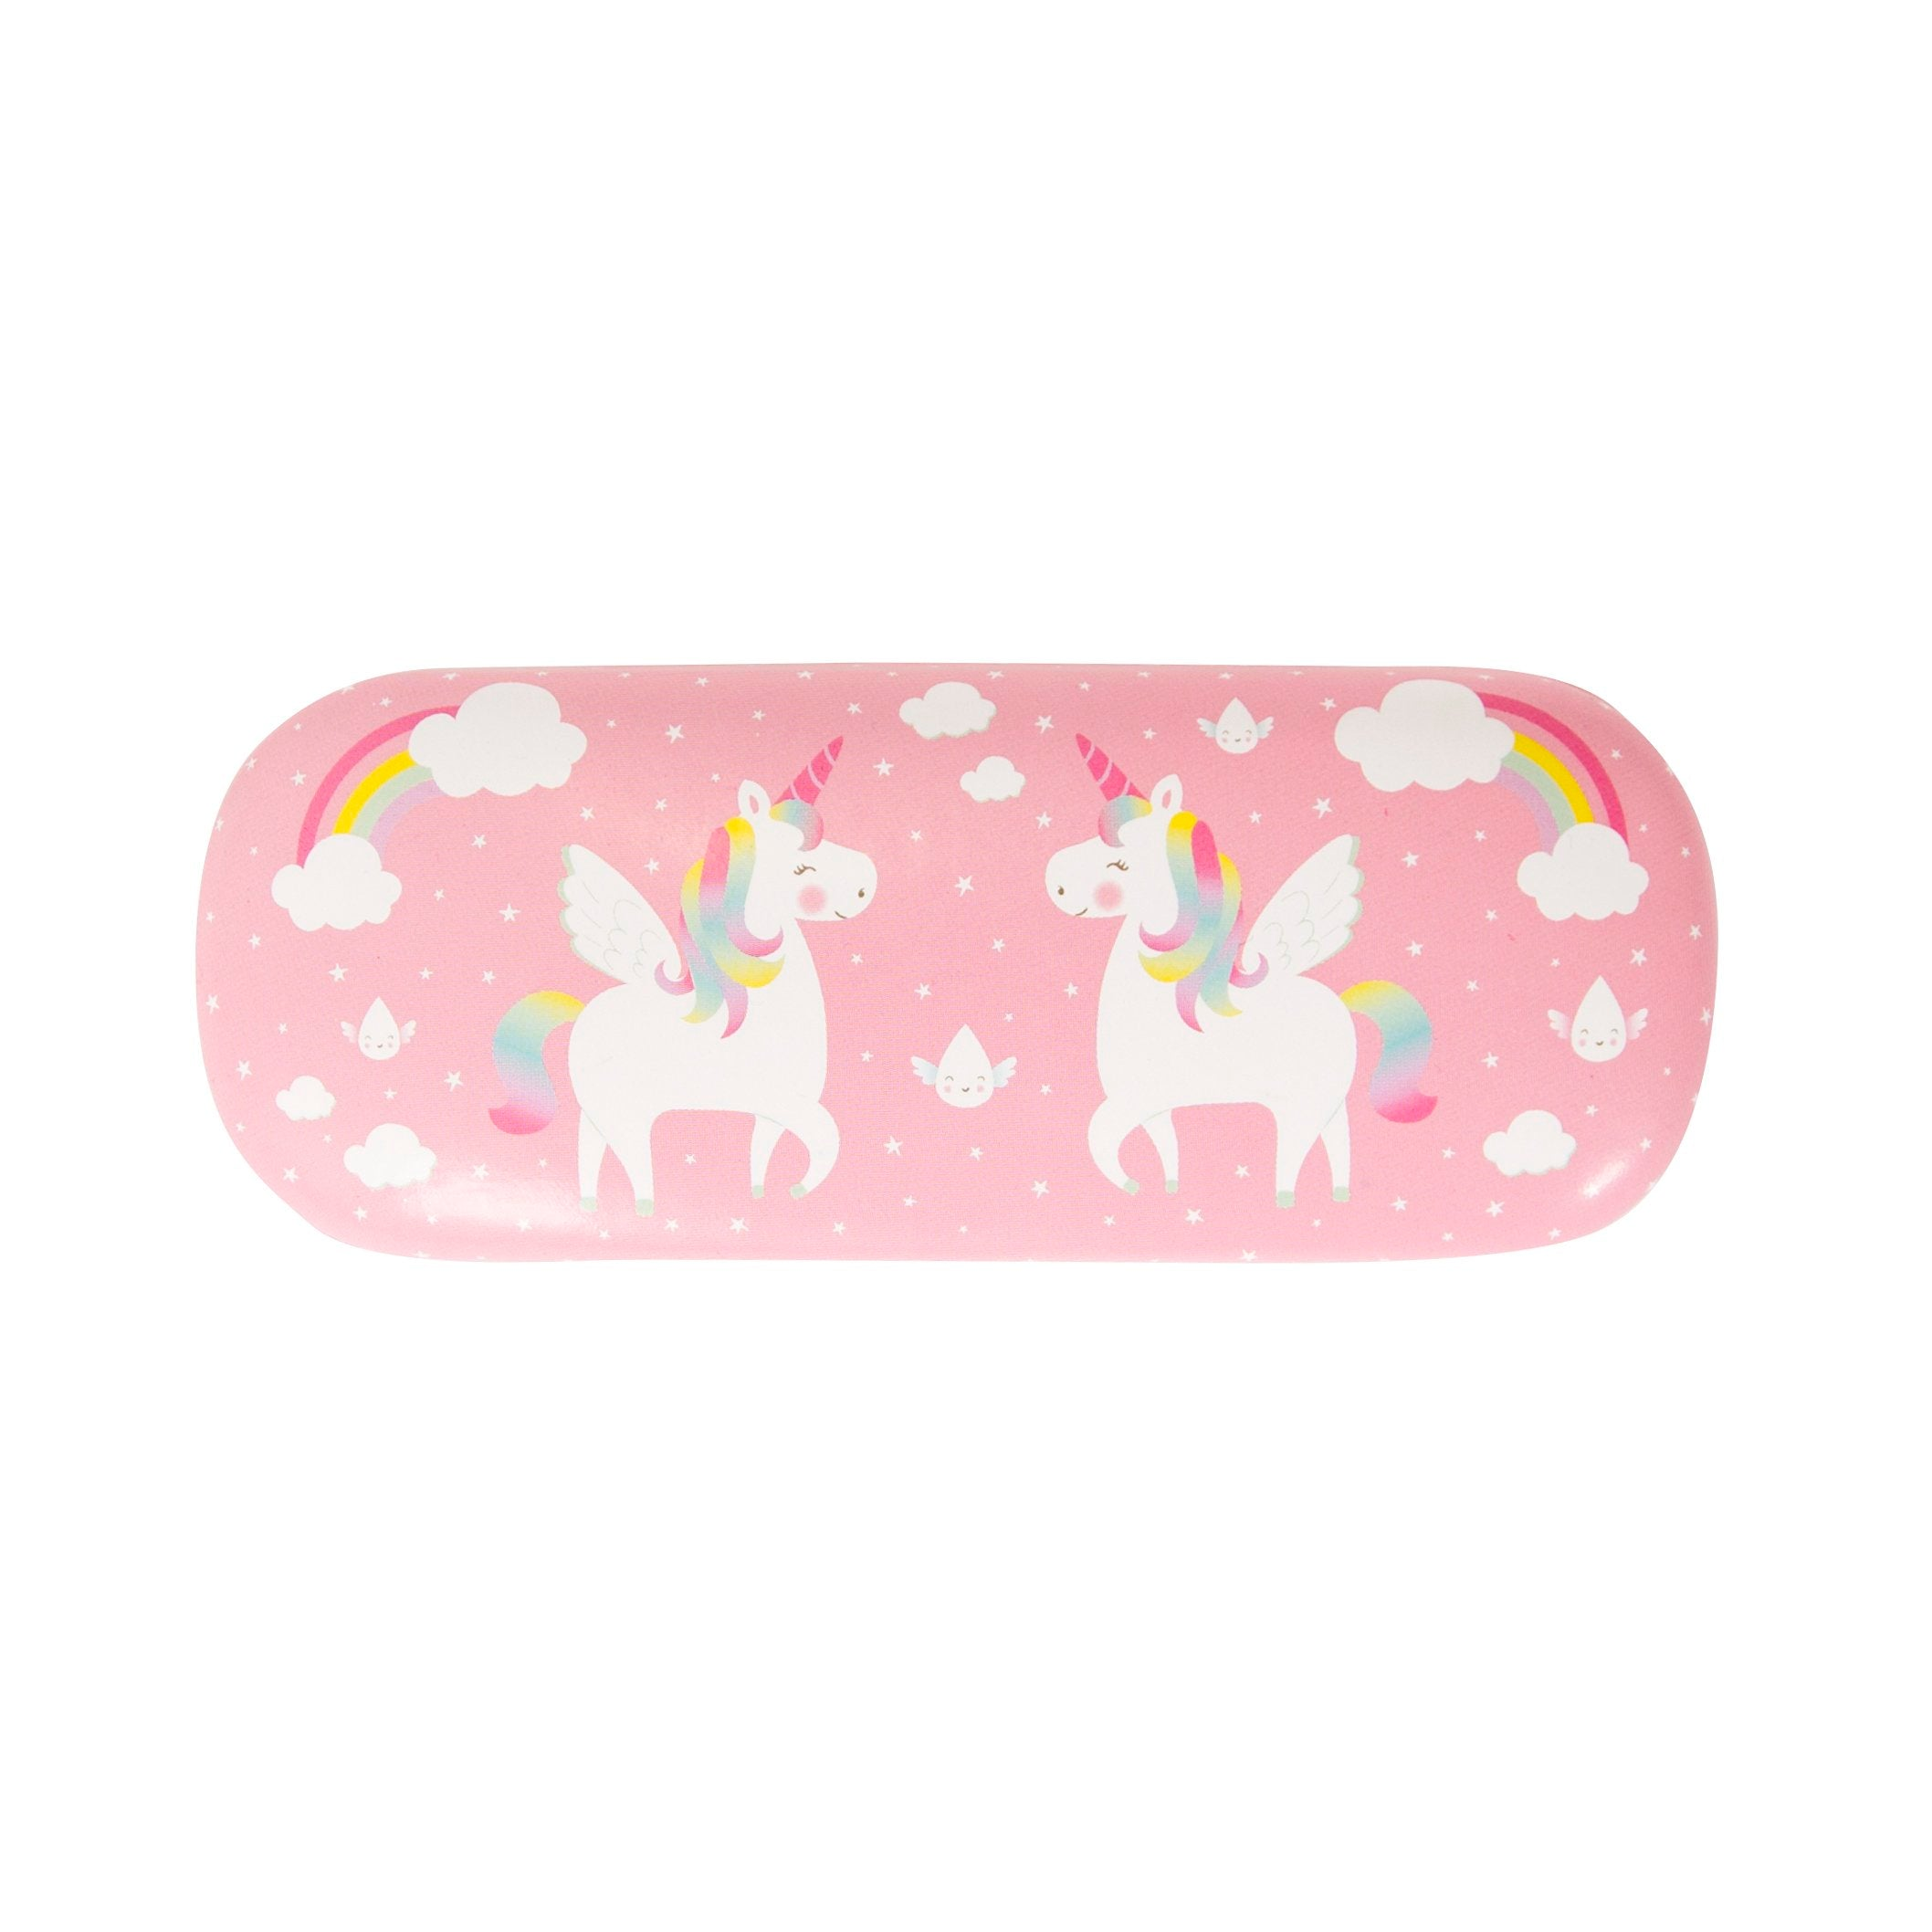 Rainbow unicorn seeing is believing Glasses Case - Wild Atlantic Living